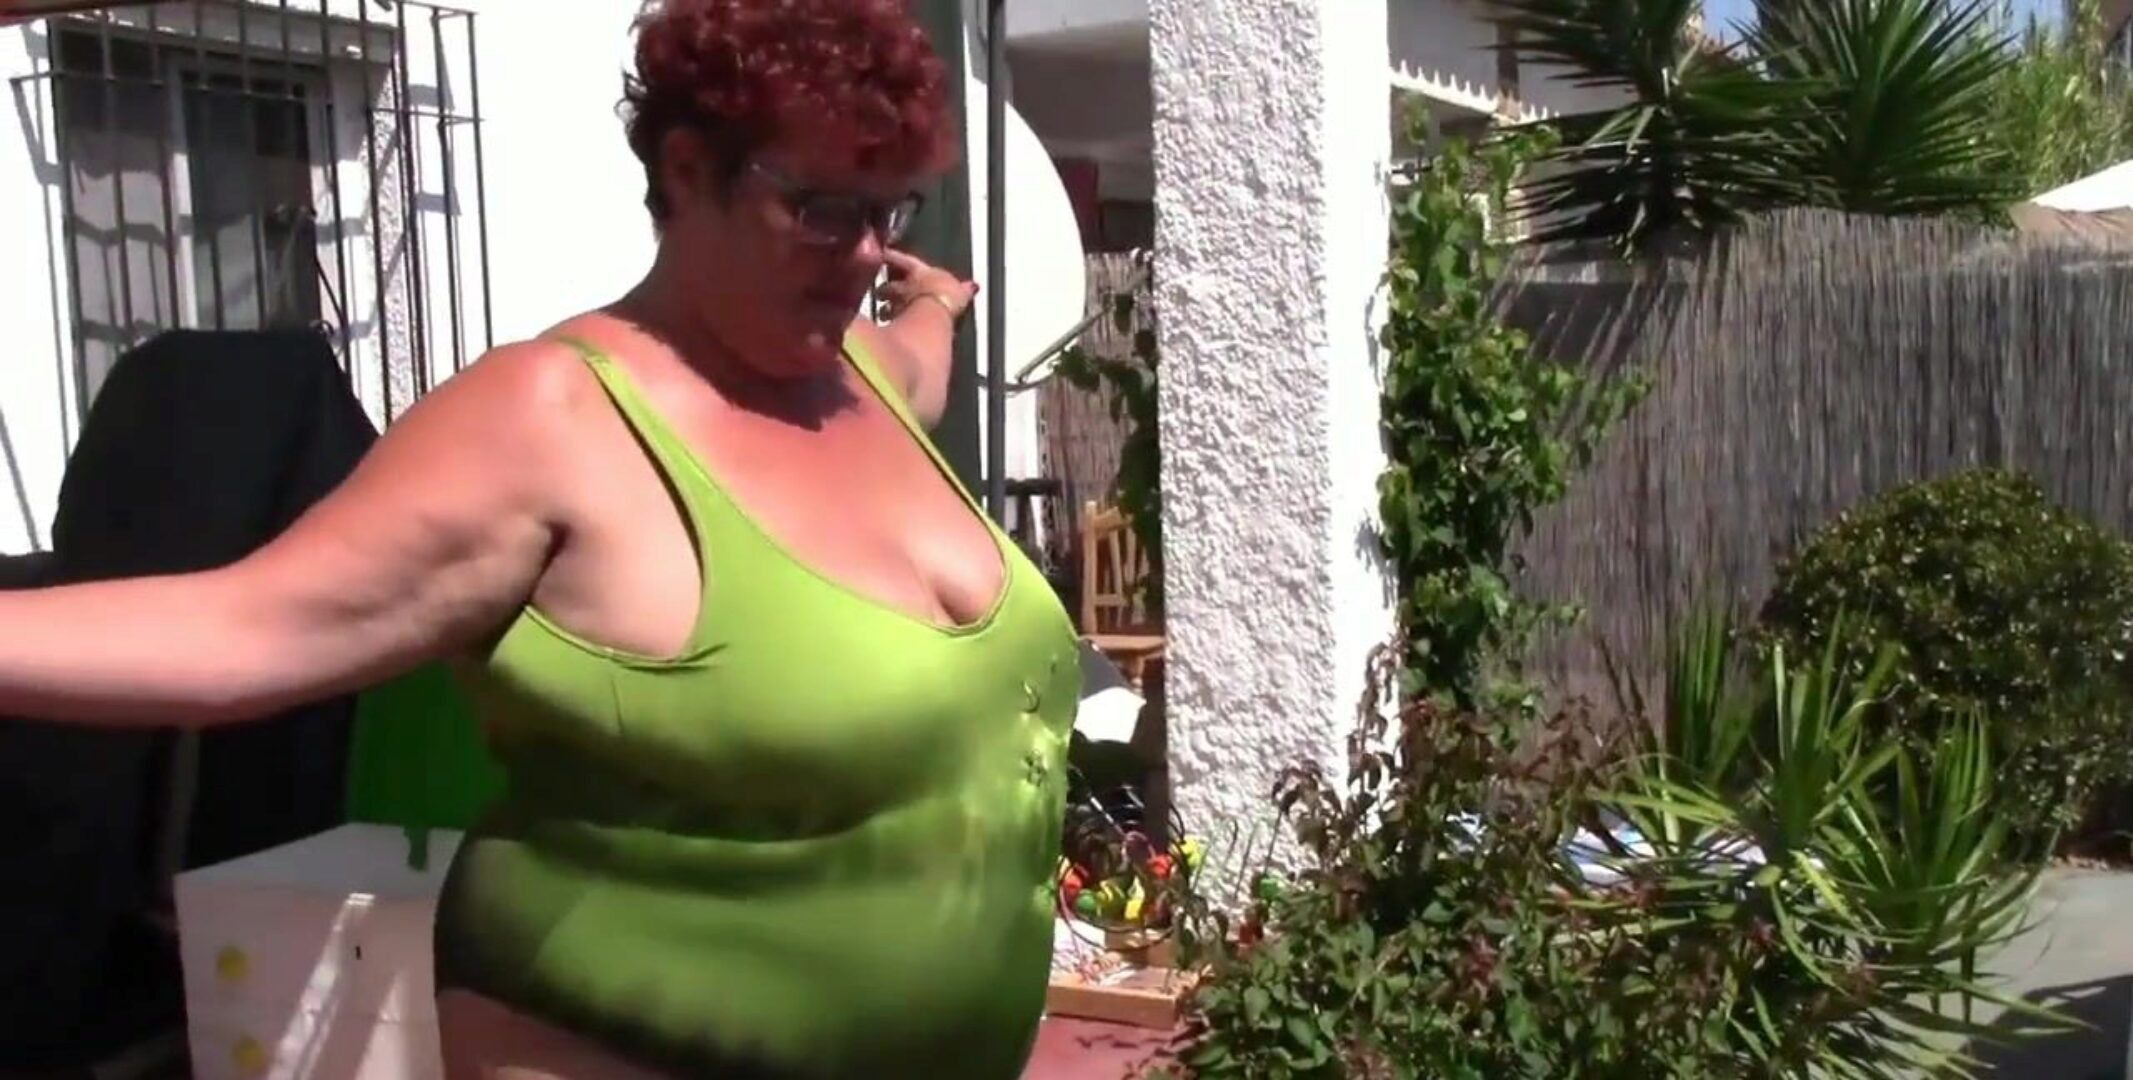 Chubby 50yo Mature Wife acquires Fucked and Creampied: Porn 8d Watch Chubby 50yo Mature Wife receives Fucked and Creampied movie scene on xHamster - the ultimate selection of free Free Mature Tube & Mature Xxx HD porn tube videos